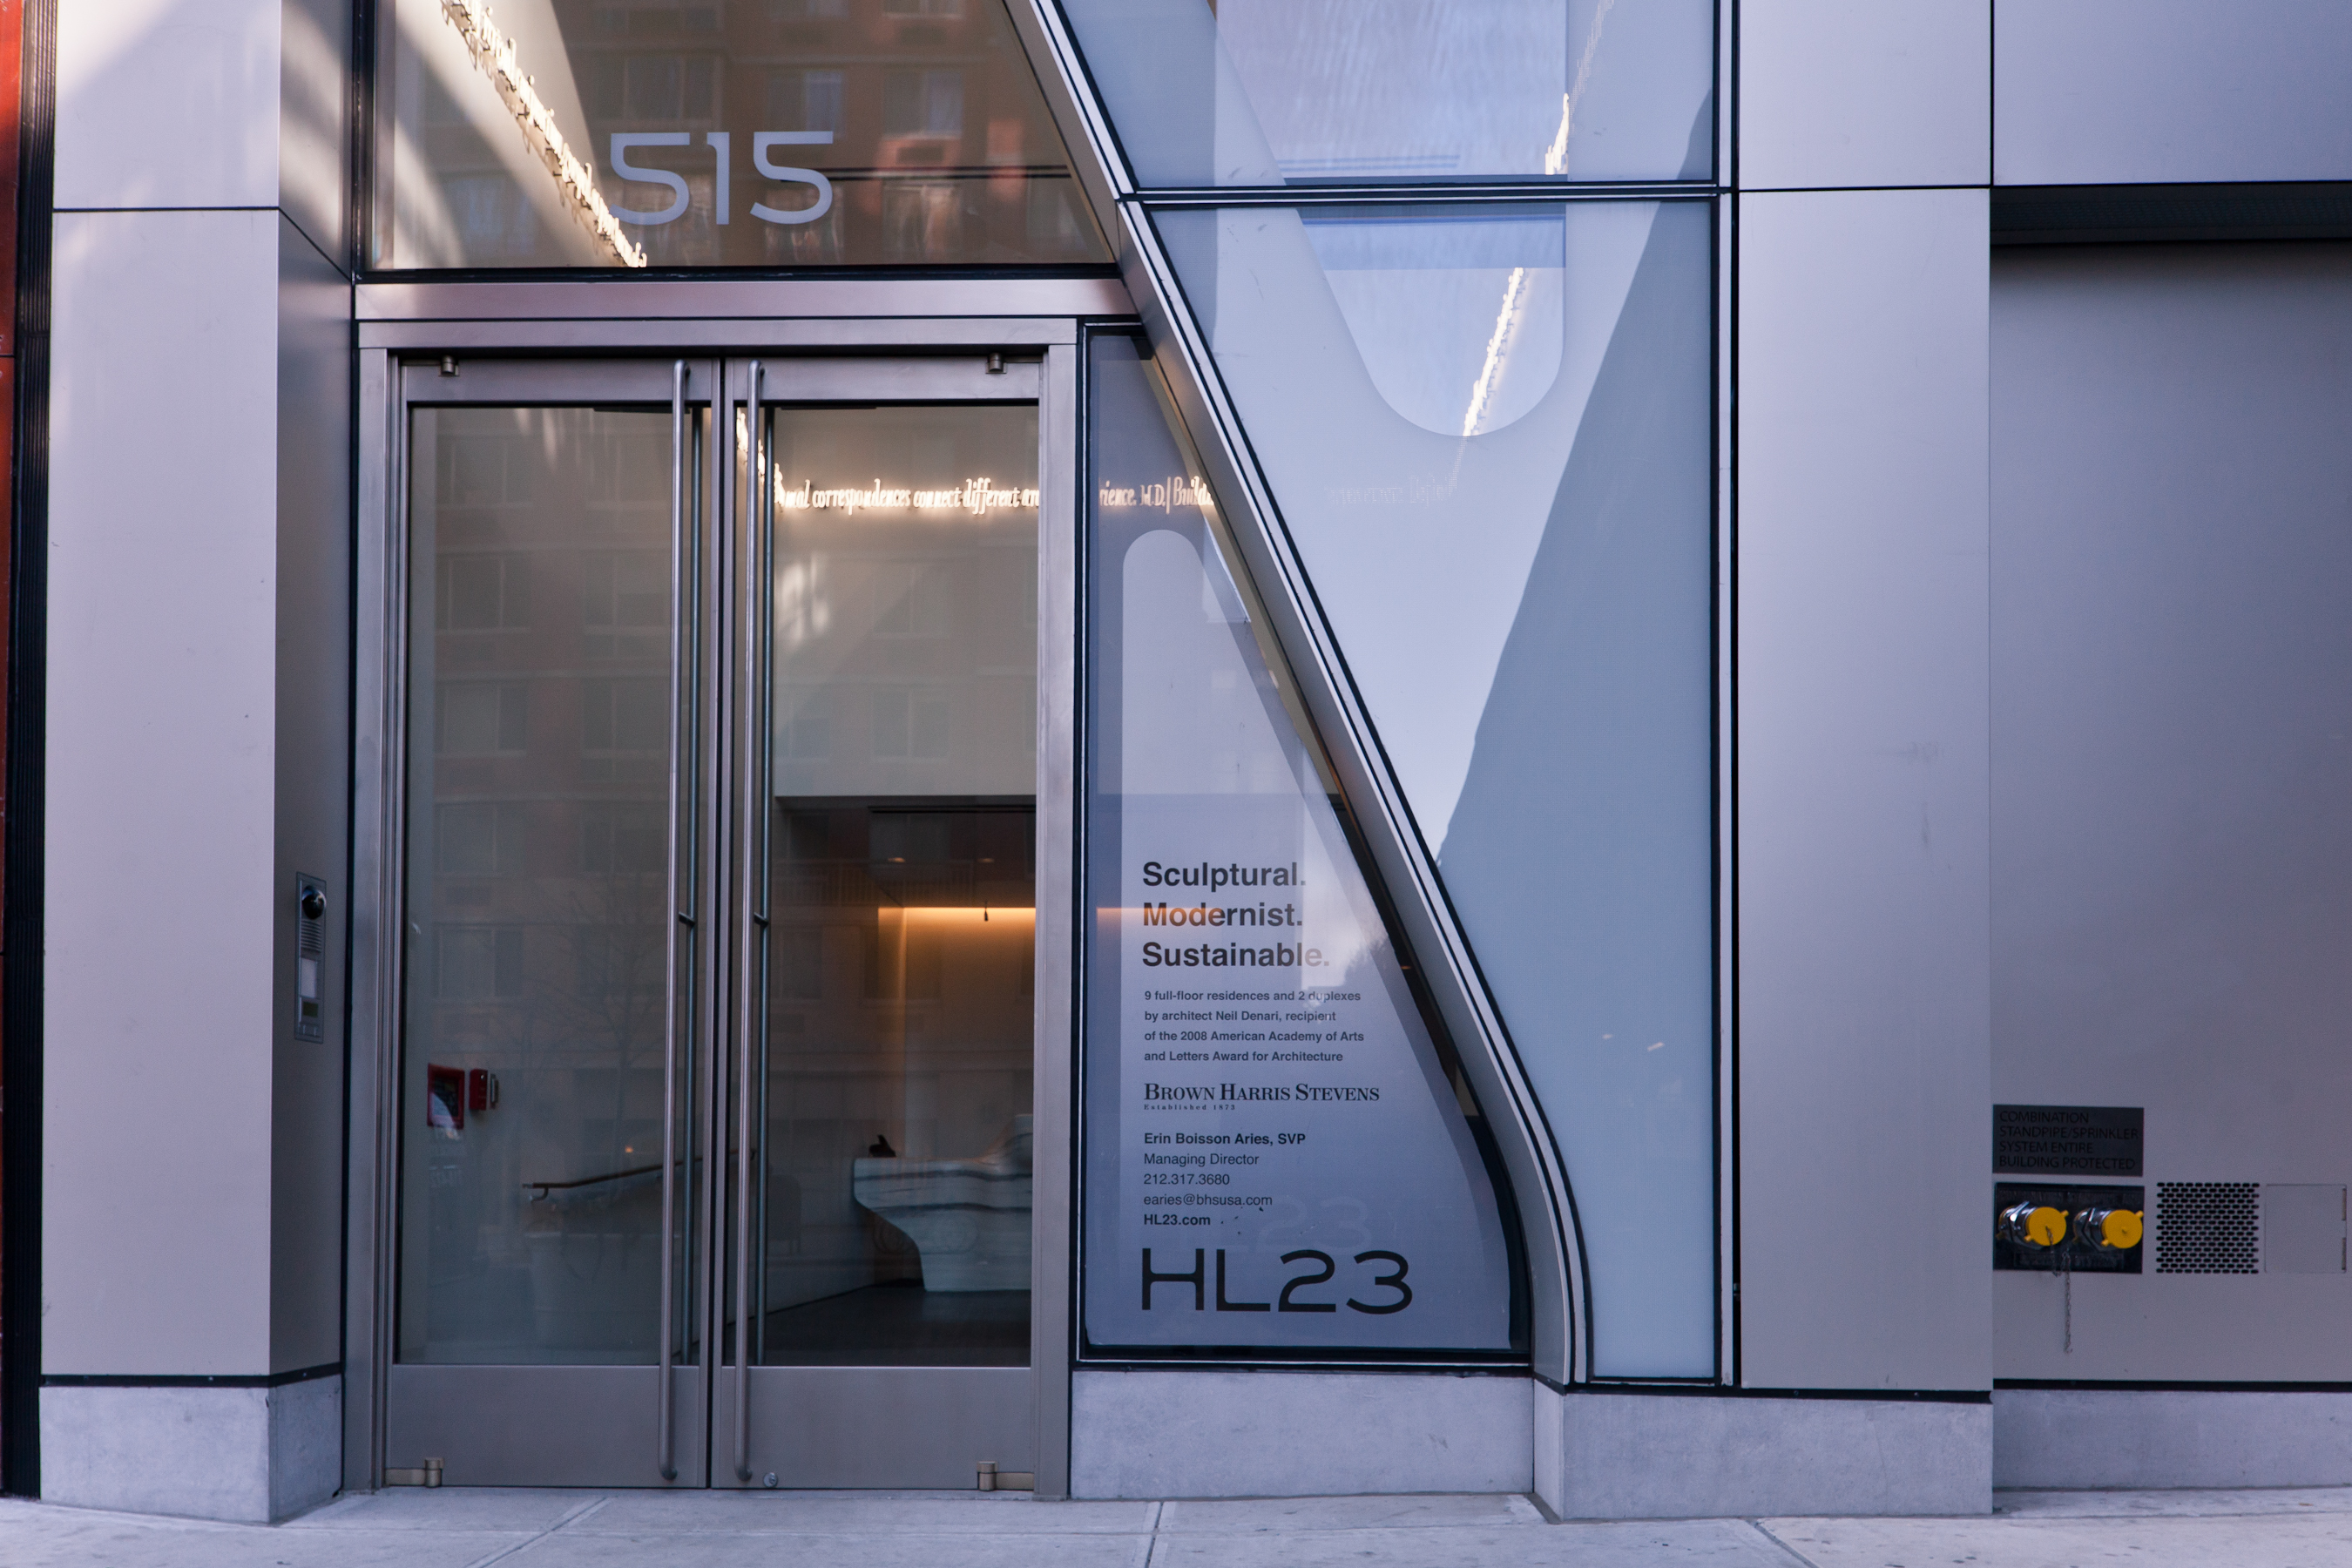 Entrance Doors Press New York City S High Line 23 Features Entrance Doors From